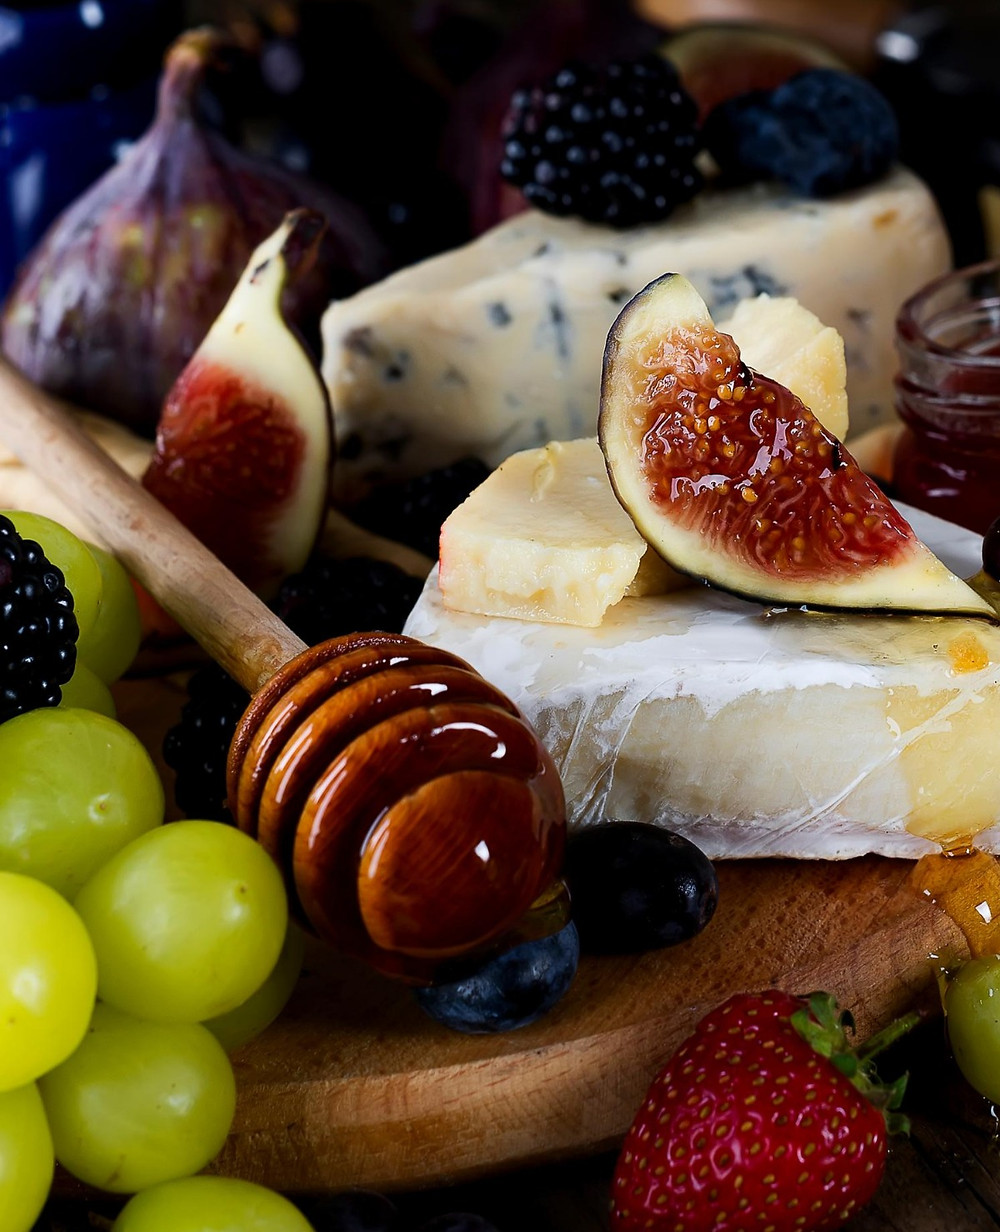 Honey, Brie, Figs, Grapes